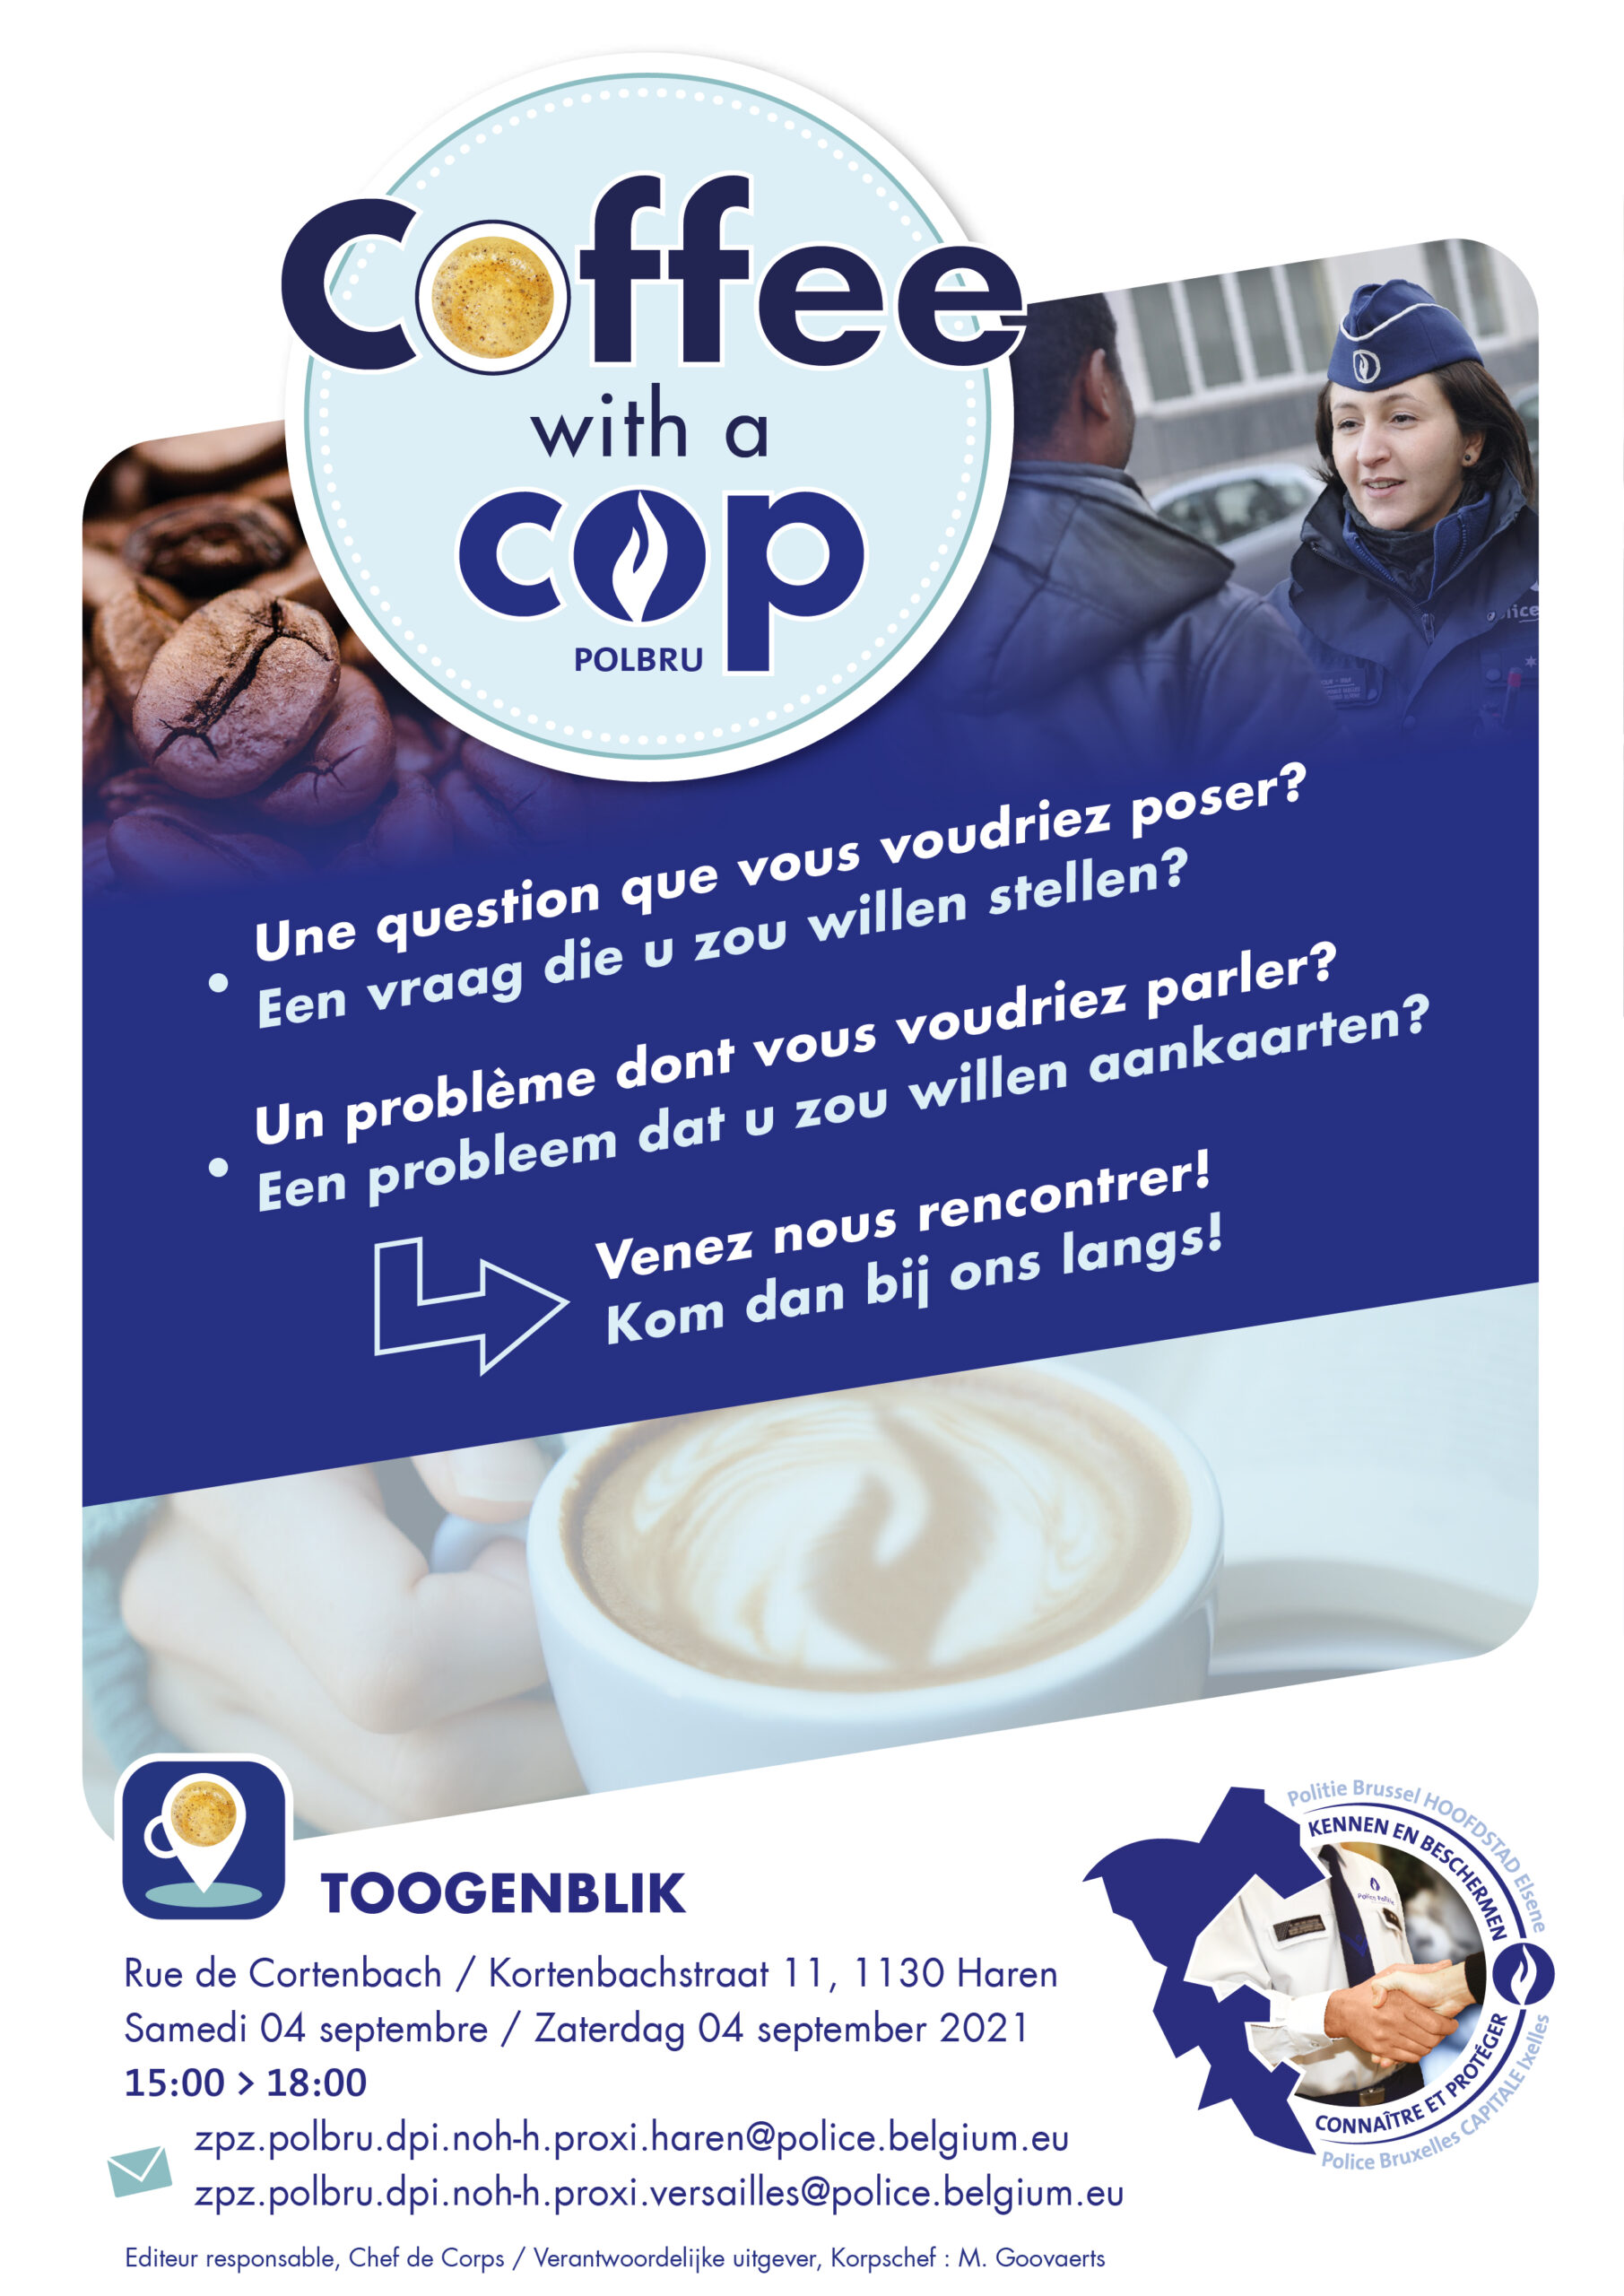 26-07-2021 Coffee with a cop - TOOGENBLIK v3